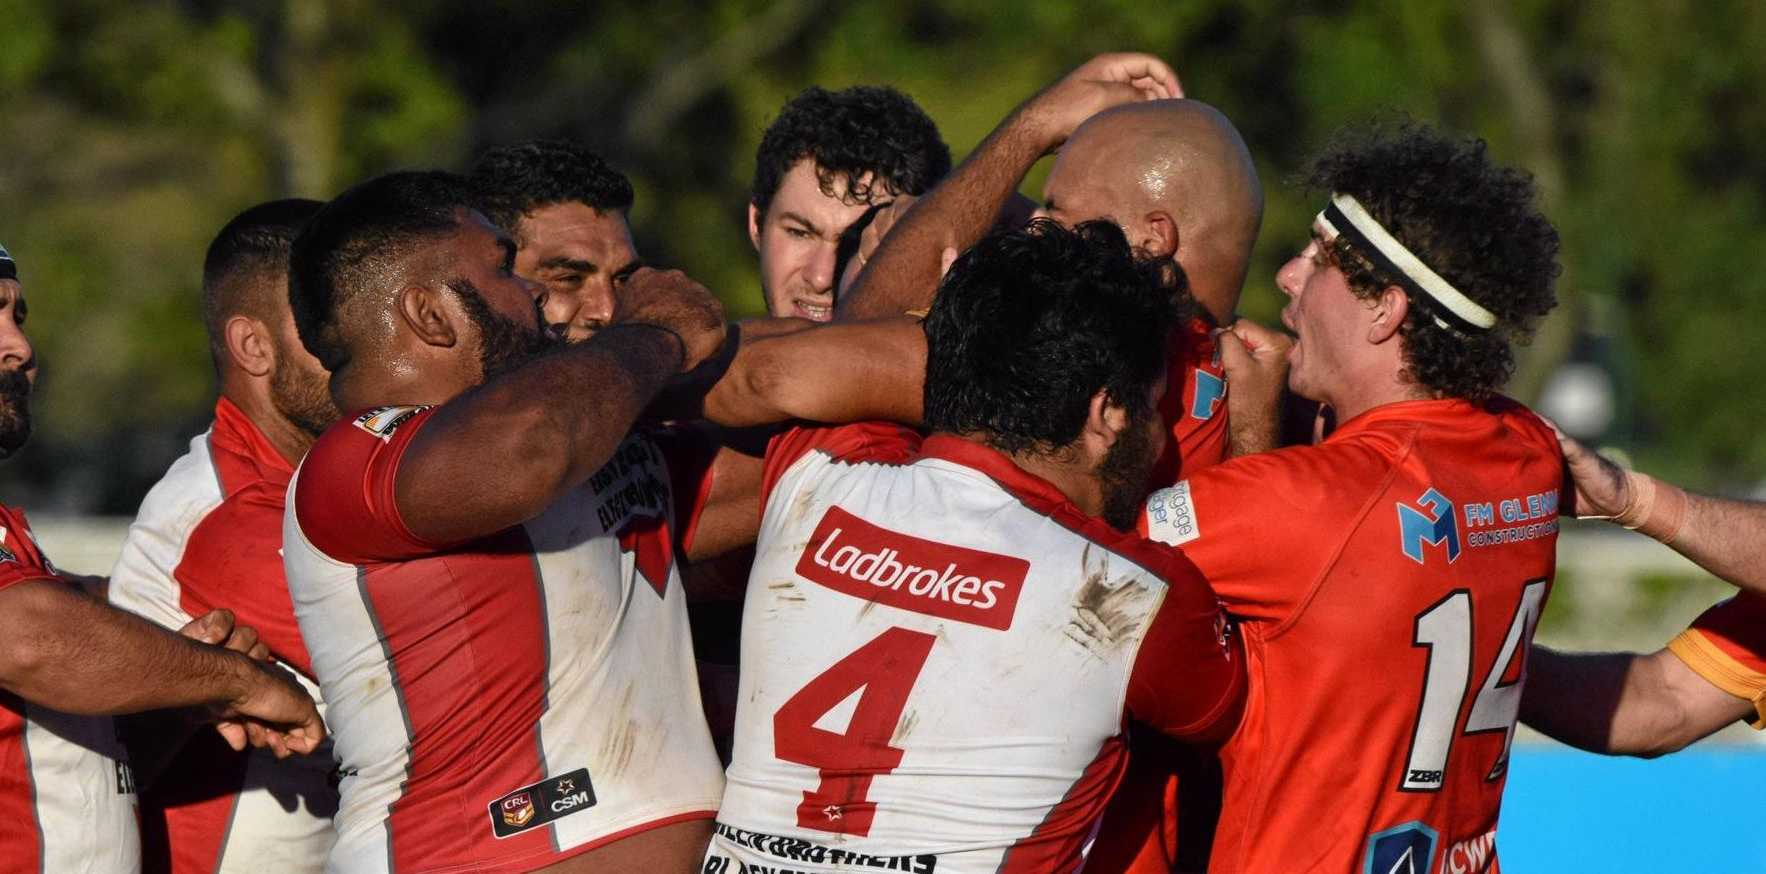 FIGHT NIGHT: The Coffs Harbour Comets v South Grafton Rebels game had to be stopped early after numerous fights broke out and players were sent from the field.